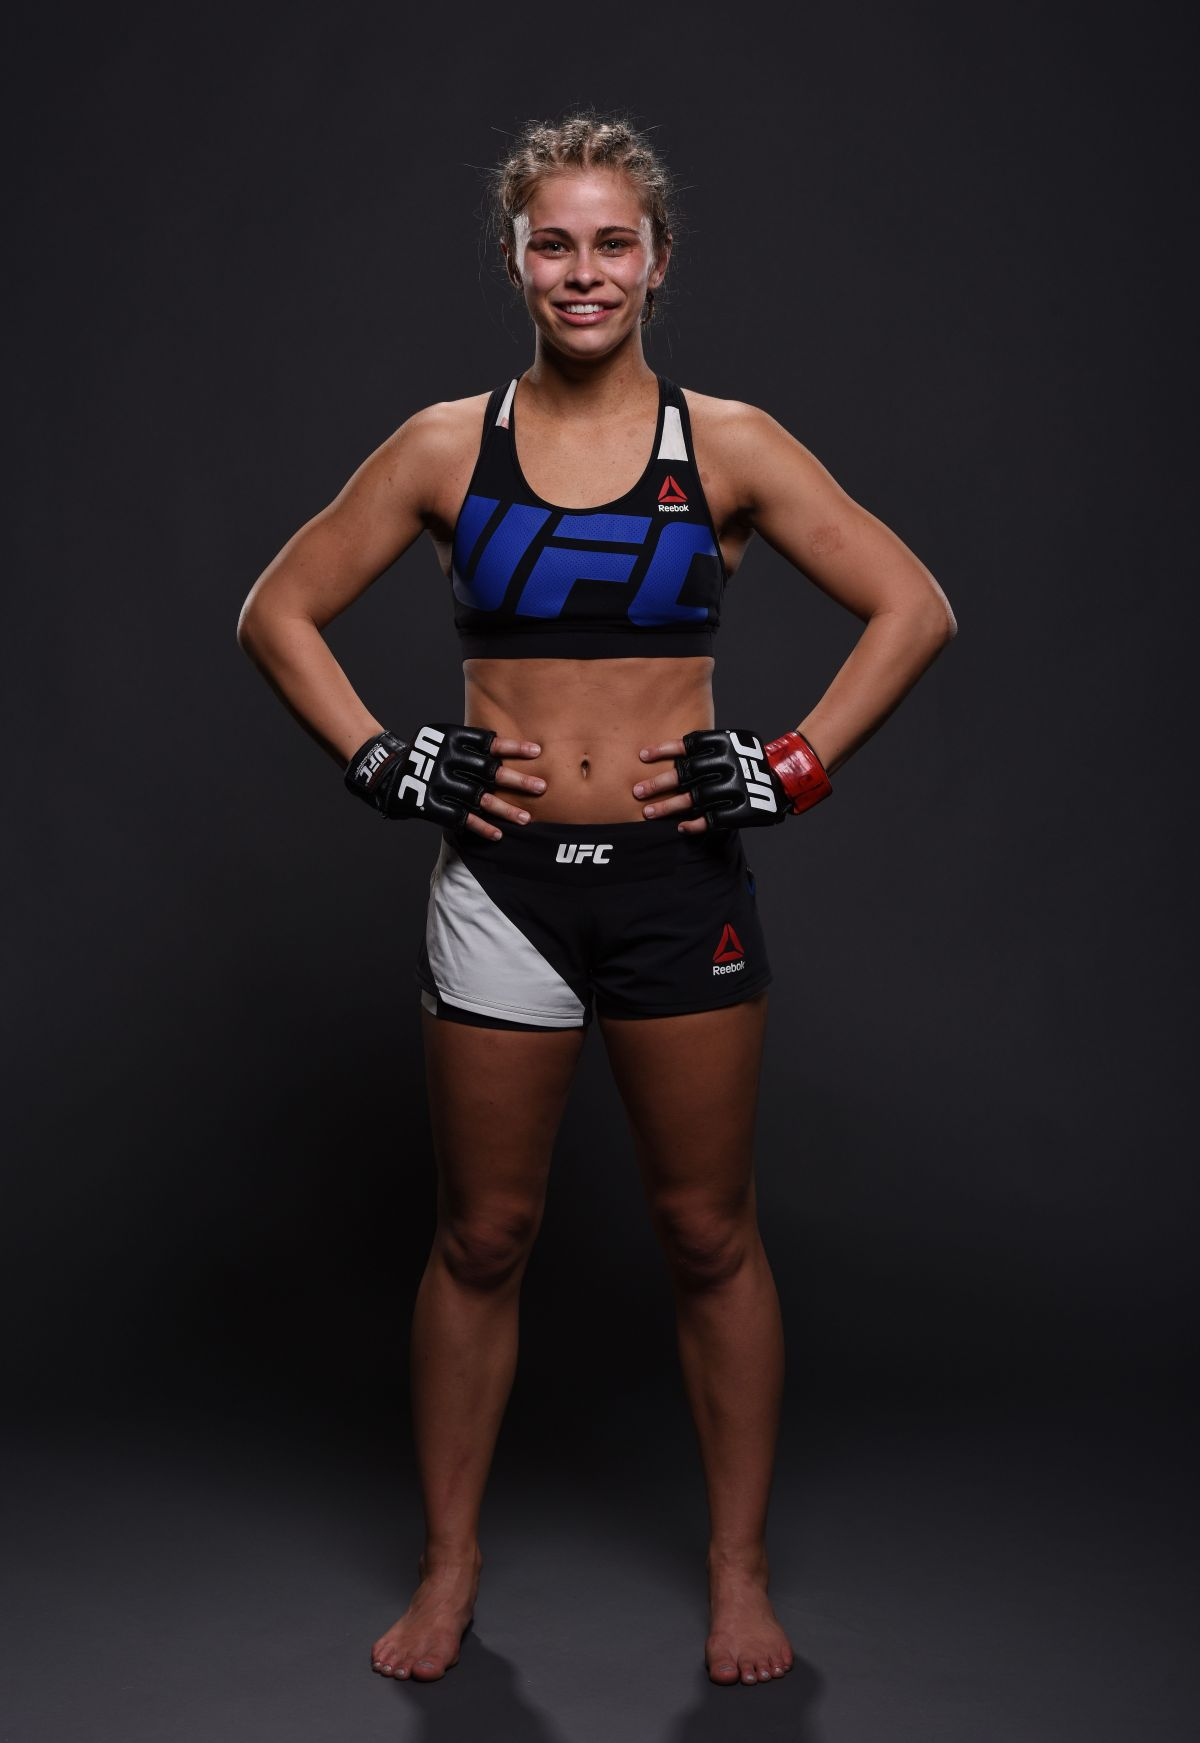 PAIGE VANZANT vs ALEX CHAMBERS at UFC at MGM Grand Garden